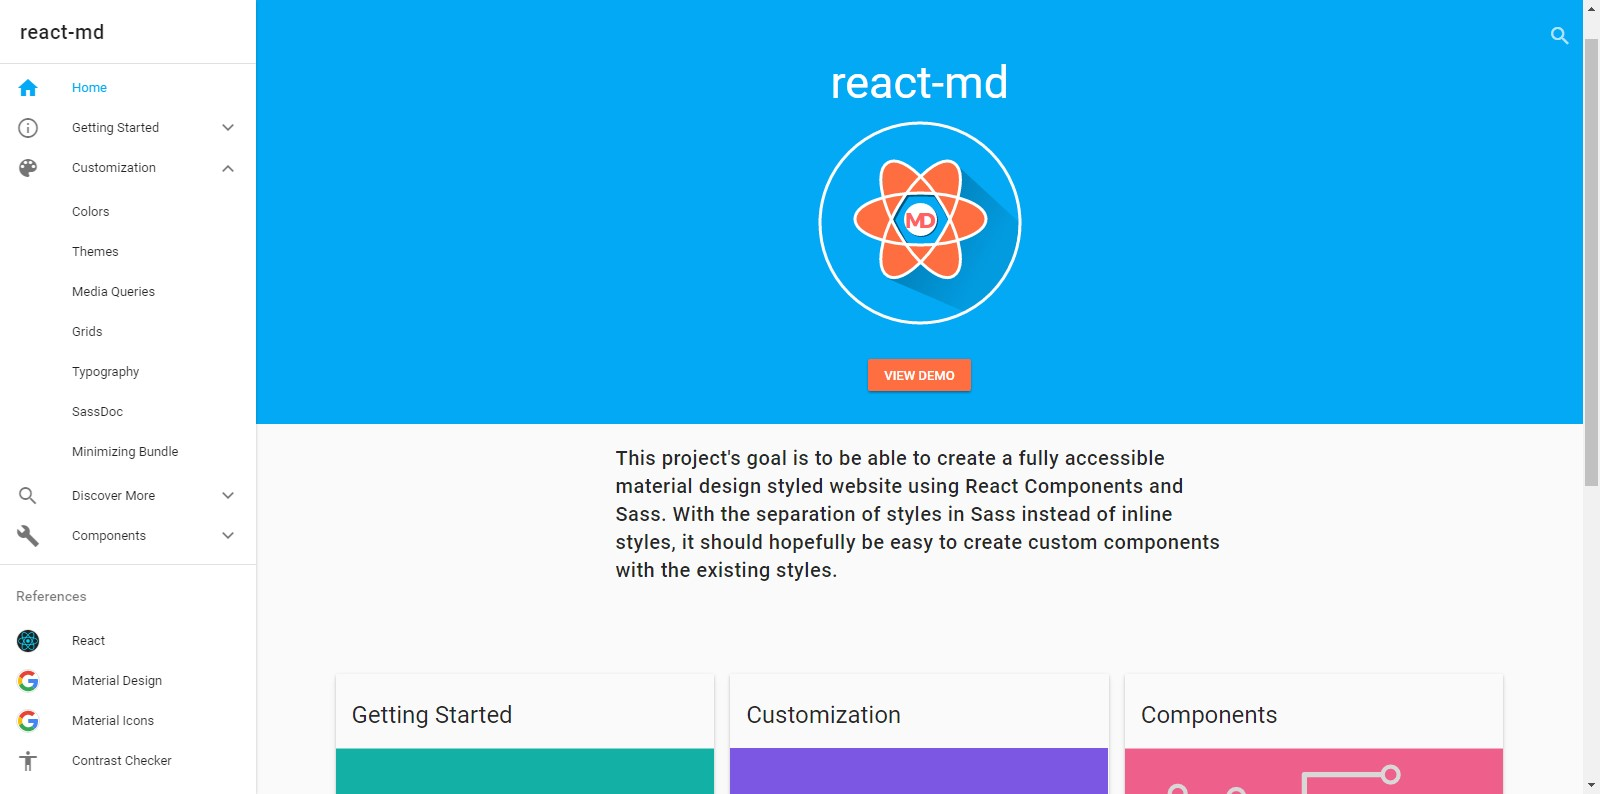 react-md Alternatives and Similar Websites and Apps